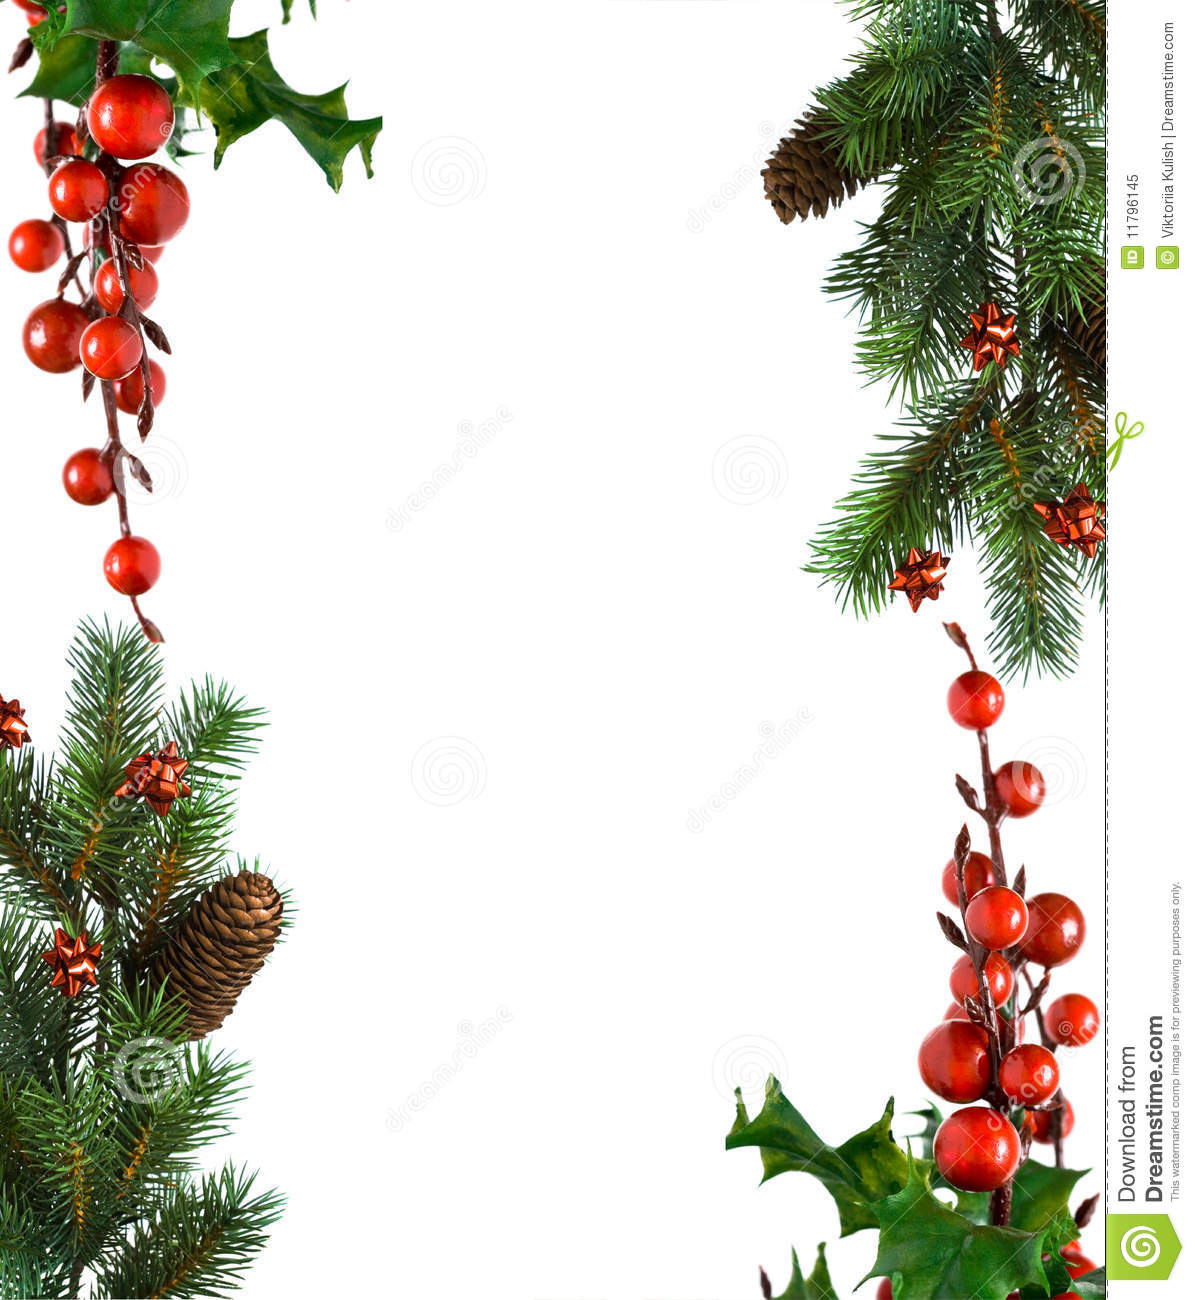 Free Christmas Borders.Border From Christmas Branches Stock Image Image Of